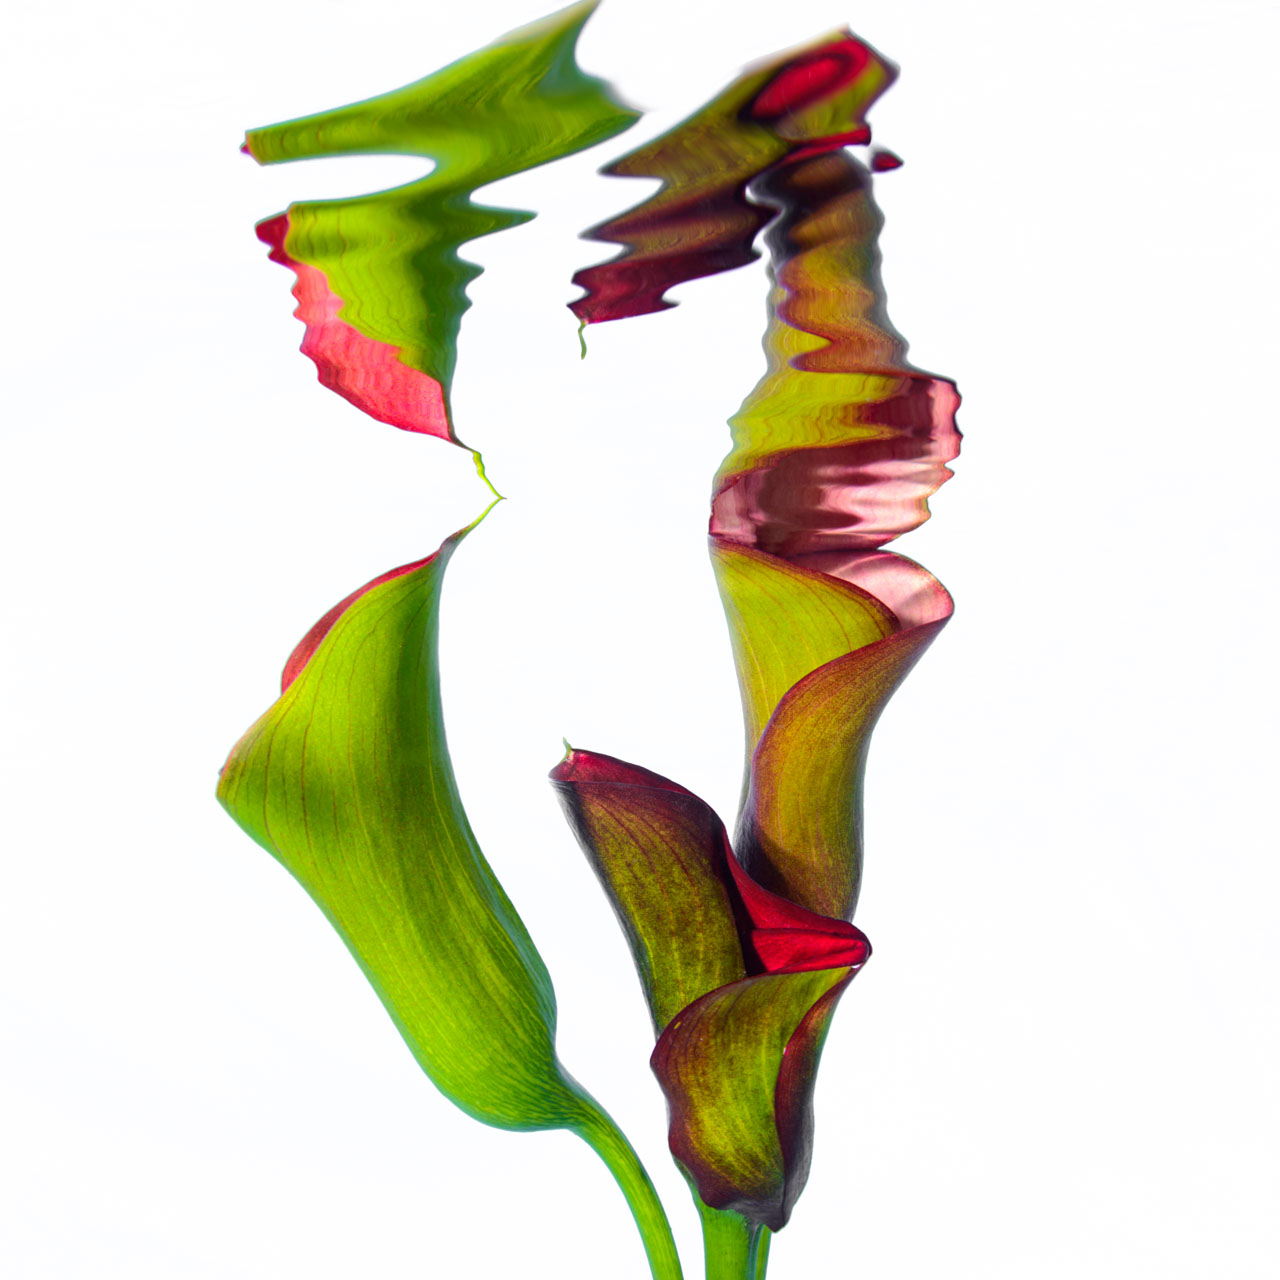 Abstract image of Cala Lilies taken underwater